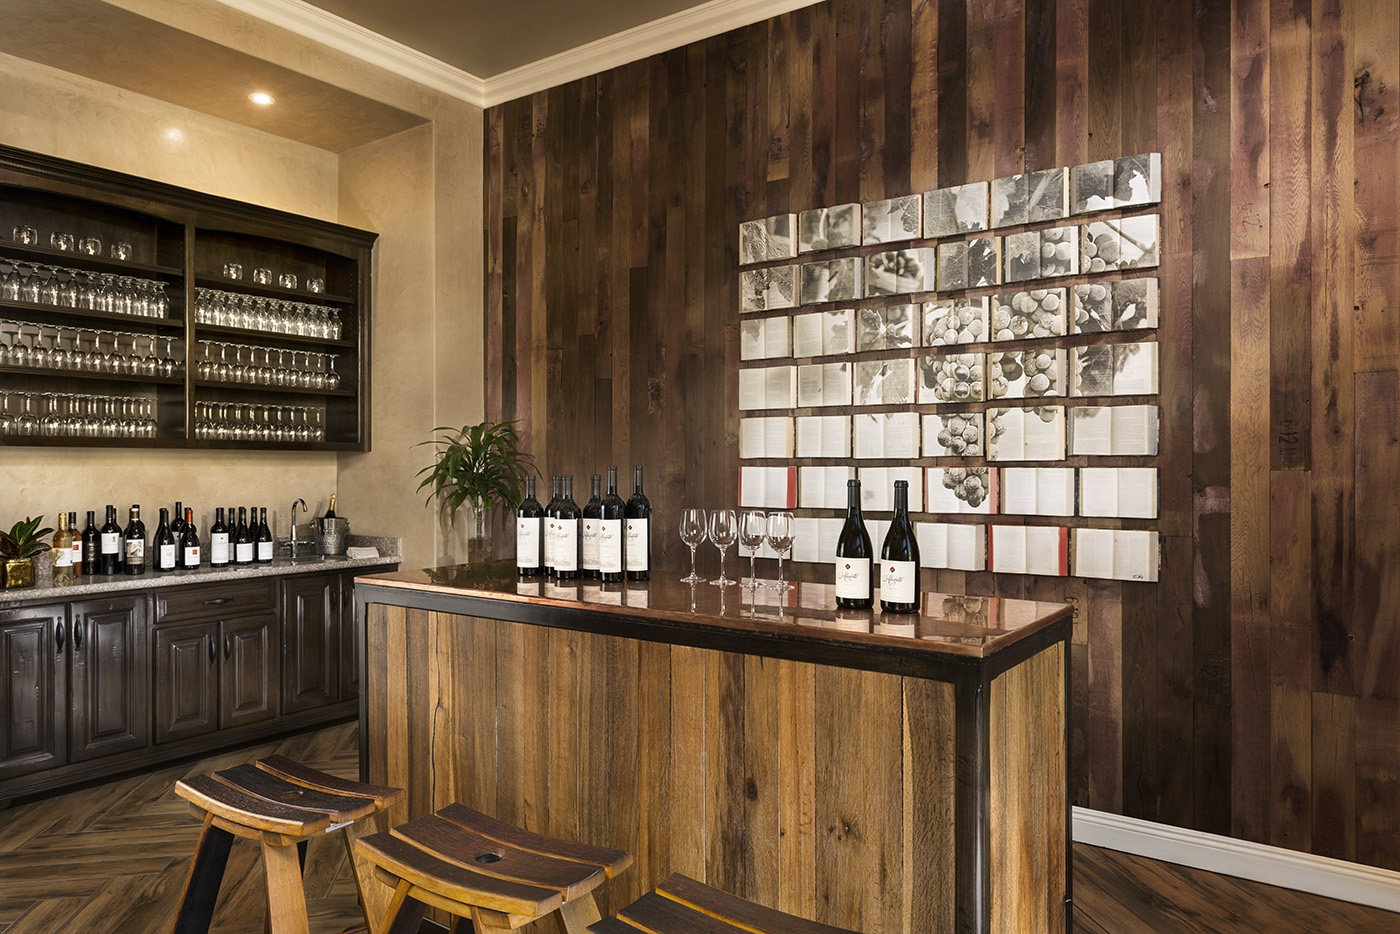 Willow Creek Tasting Room